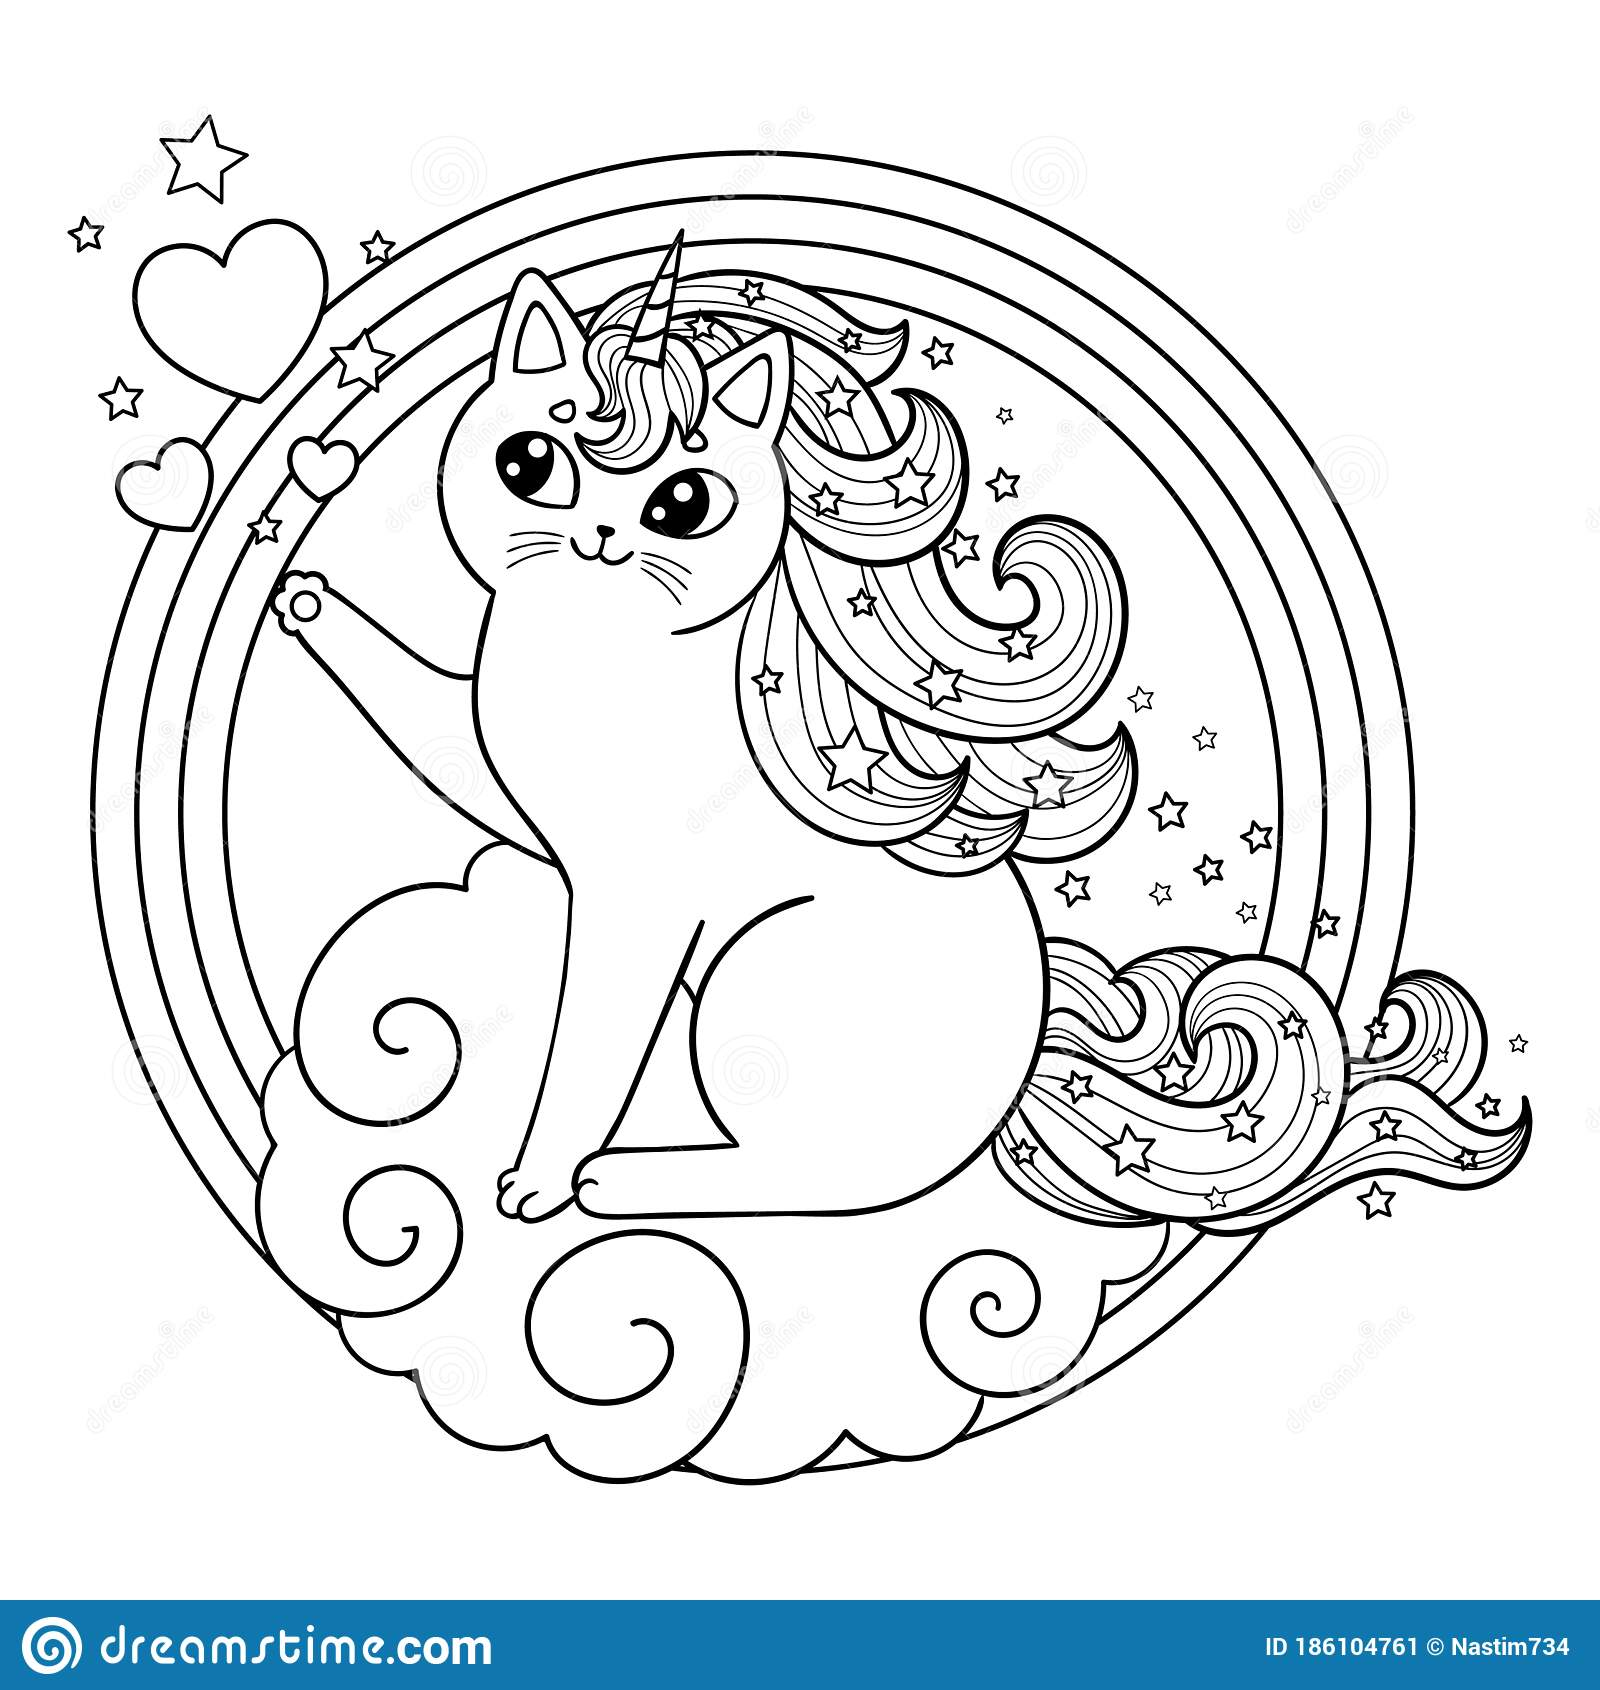 Unicorn Cat On A Cloud In A Round Frame. Cute Kitten With ...